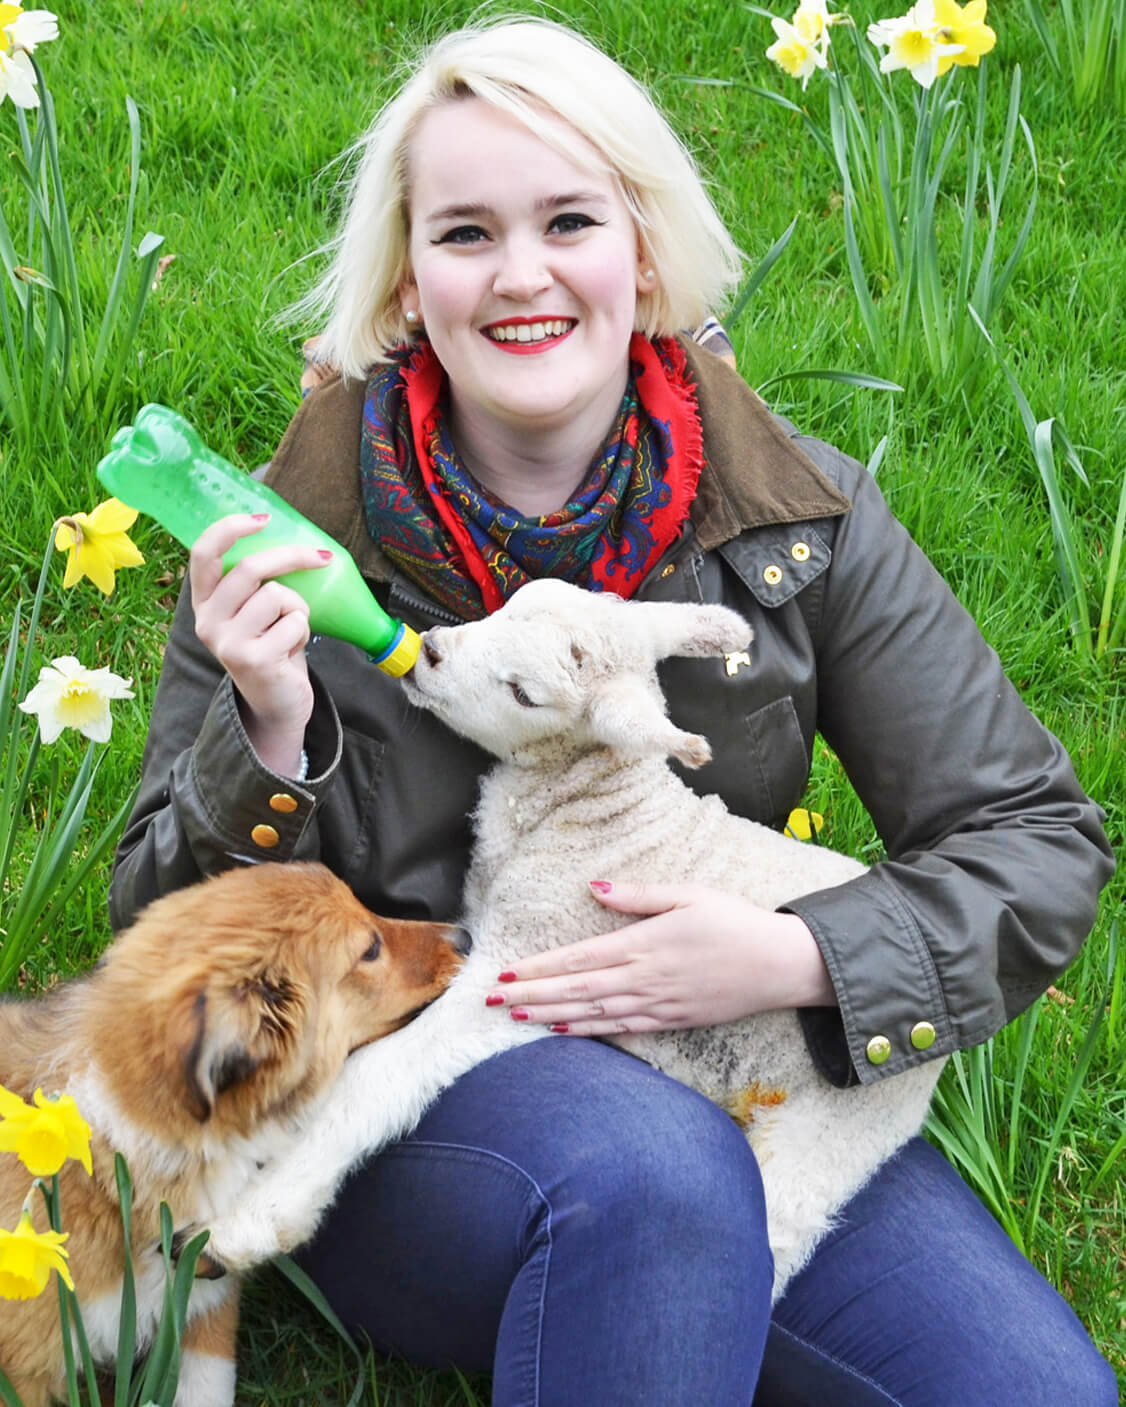 lambing experience day with gooddayout